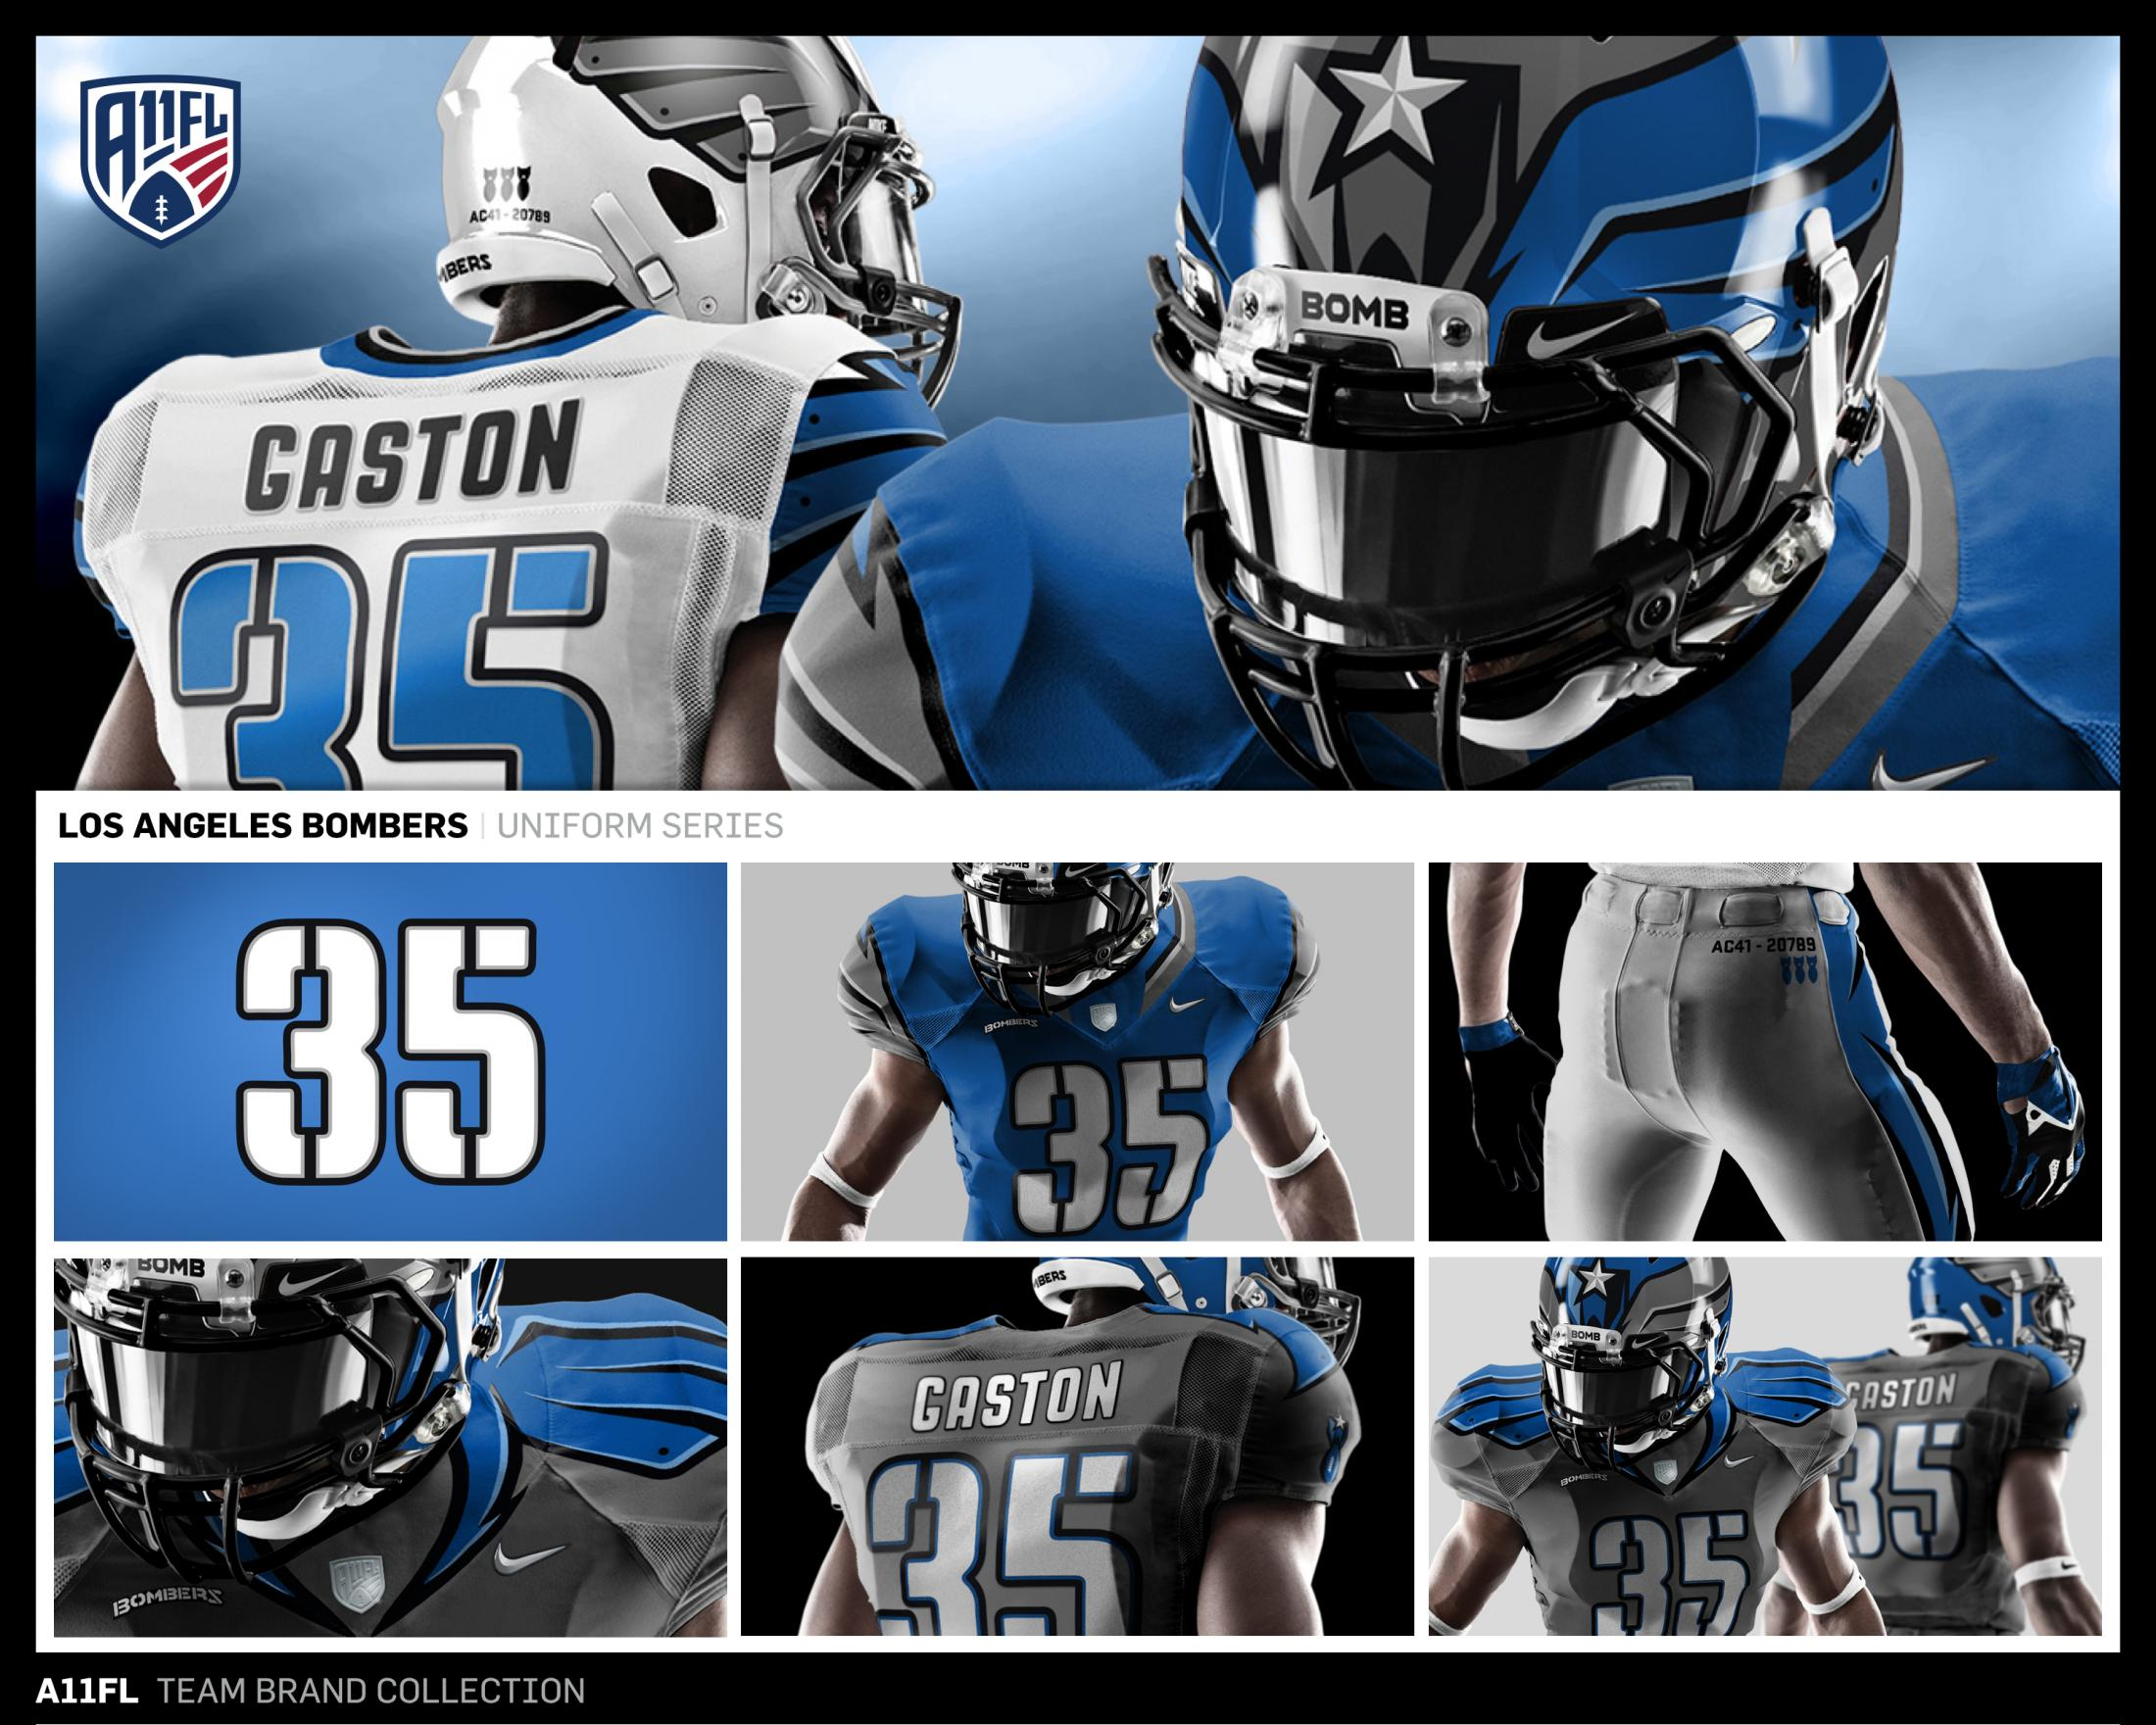 Thumbnail for A11 Football League Team Brand Collection